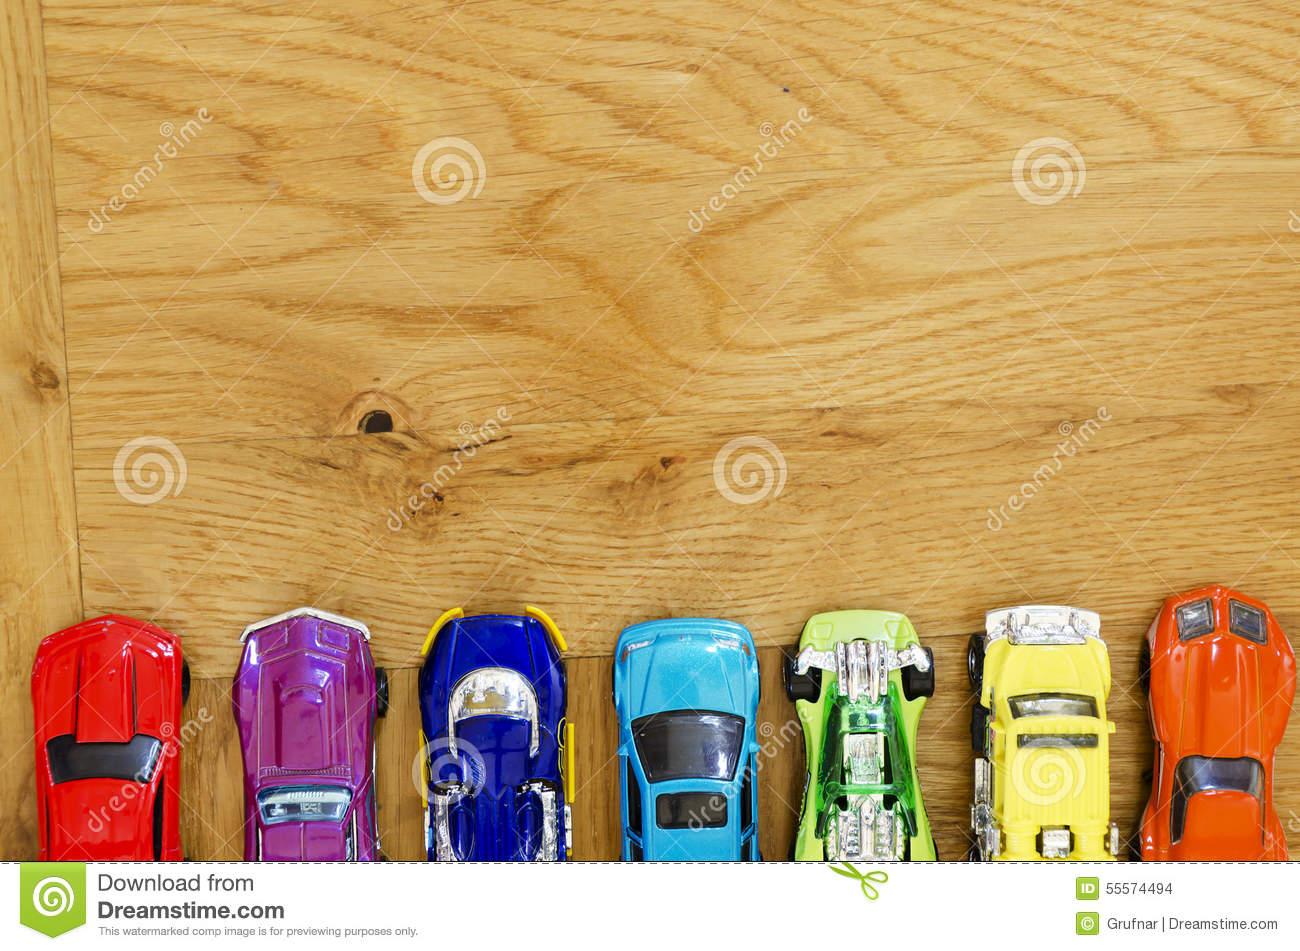 Miniature Cars Lined Up On A Wooden Floor Stock Photo